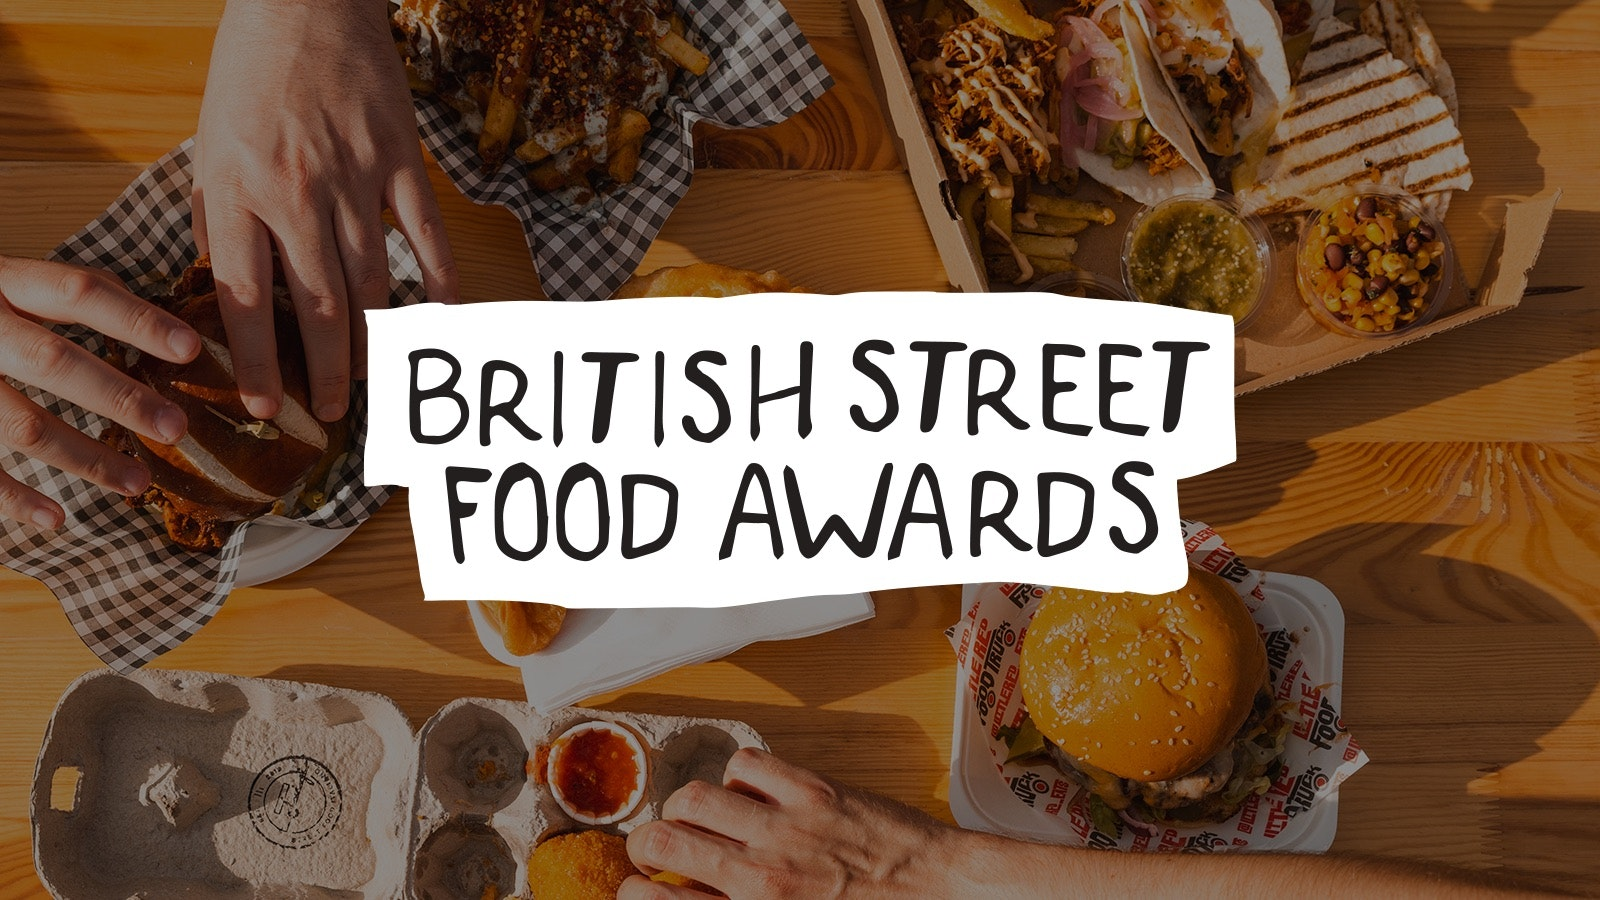 Chow Down: Friday 20th August – British Street Food Awards Weekend